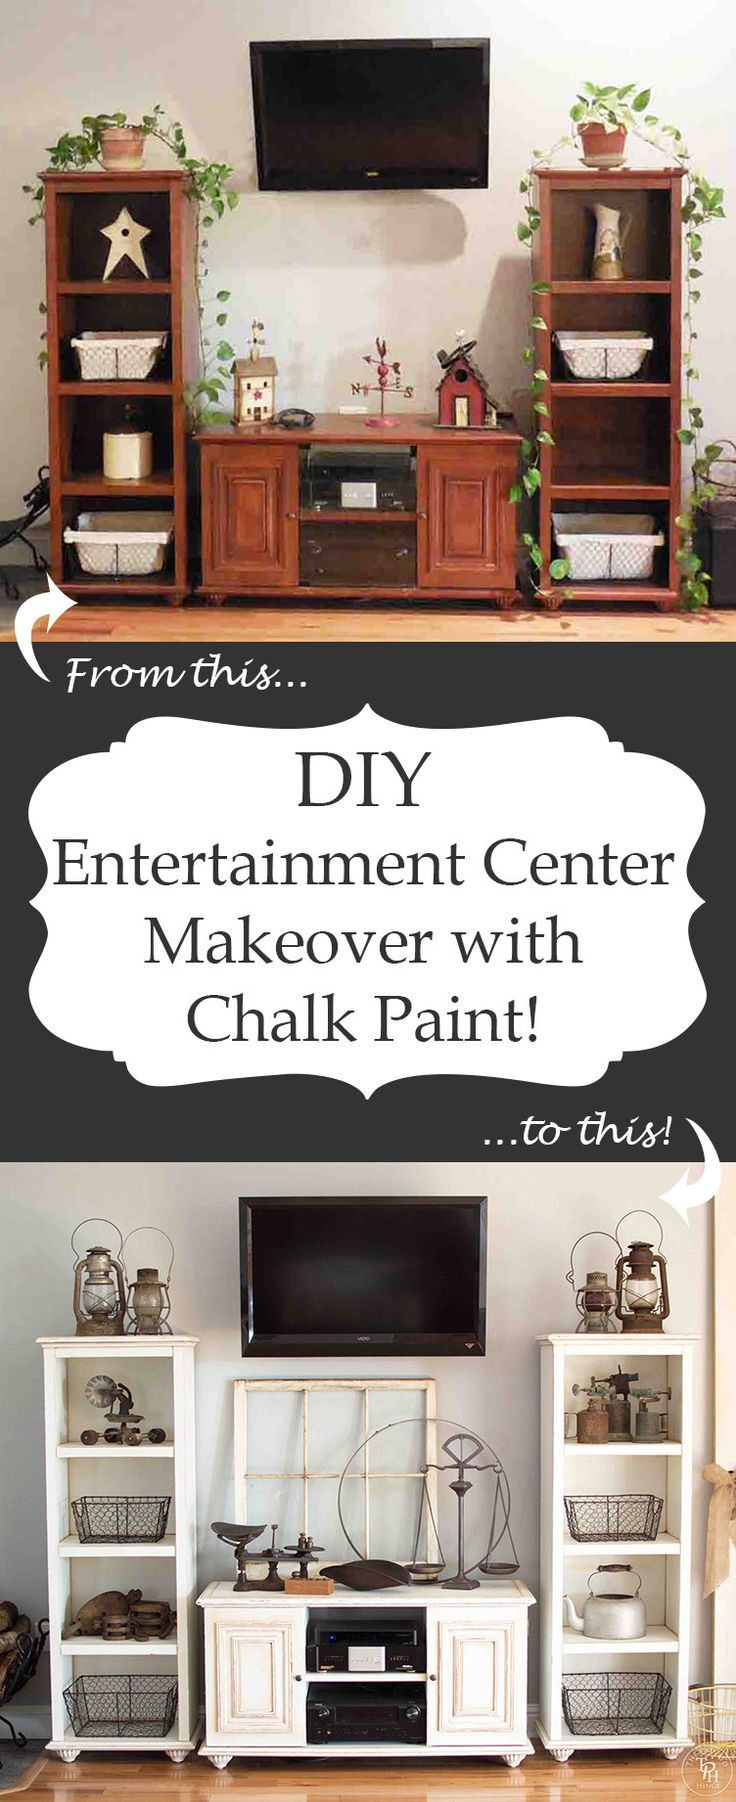 17 Best Ideas About Entertainment Center Makeover On